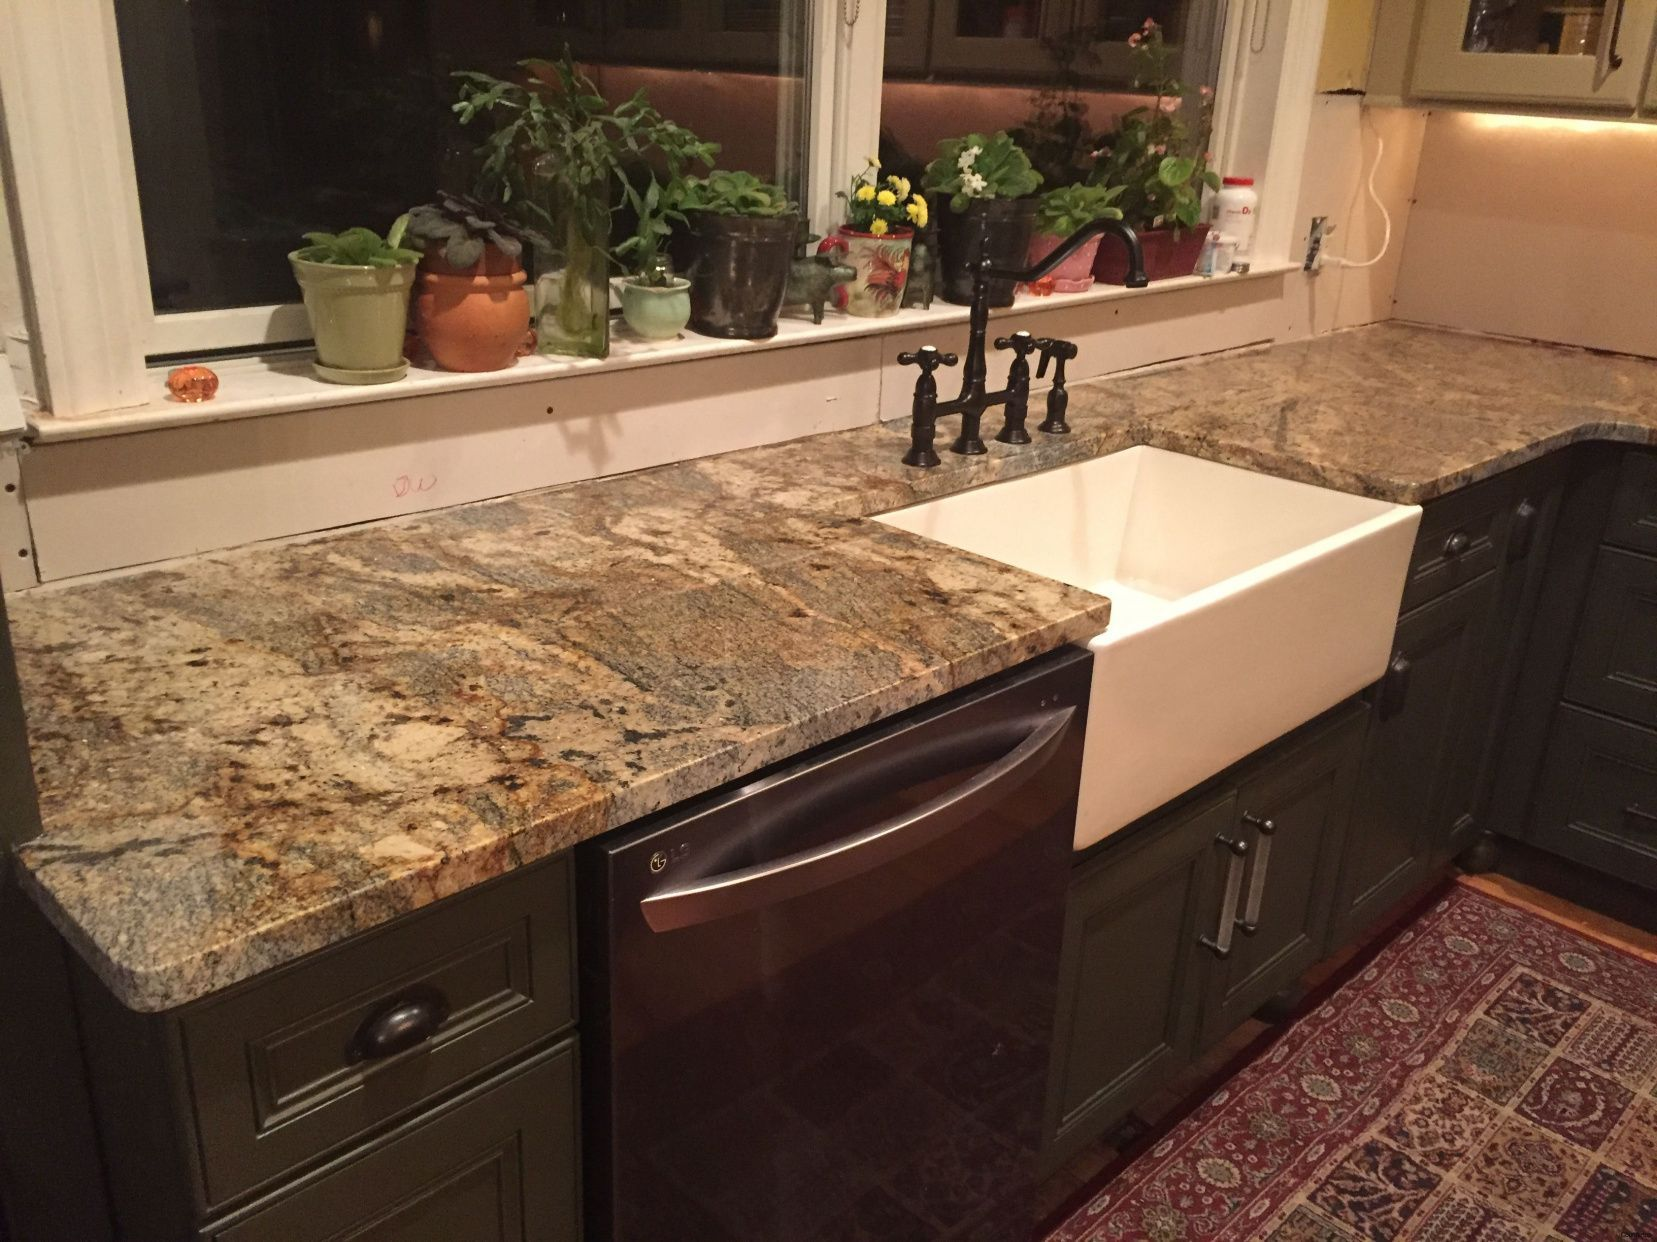 Kitchen 99 Cheap Granite Countertops Bay Area Kitchen Floor Vinyl Ideas Check More At In 2020 Cheap Granite Countertops Granite Countertops Kitchen Flooring